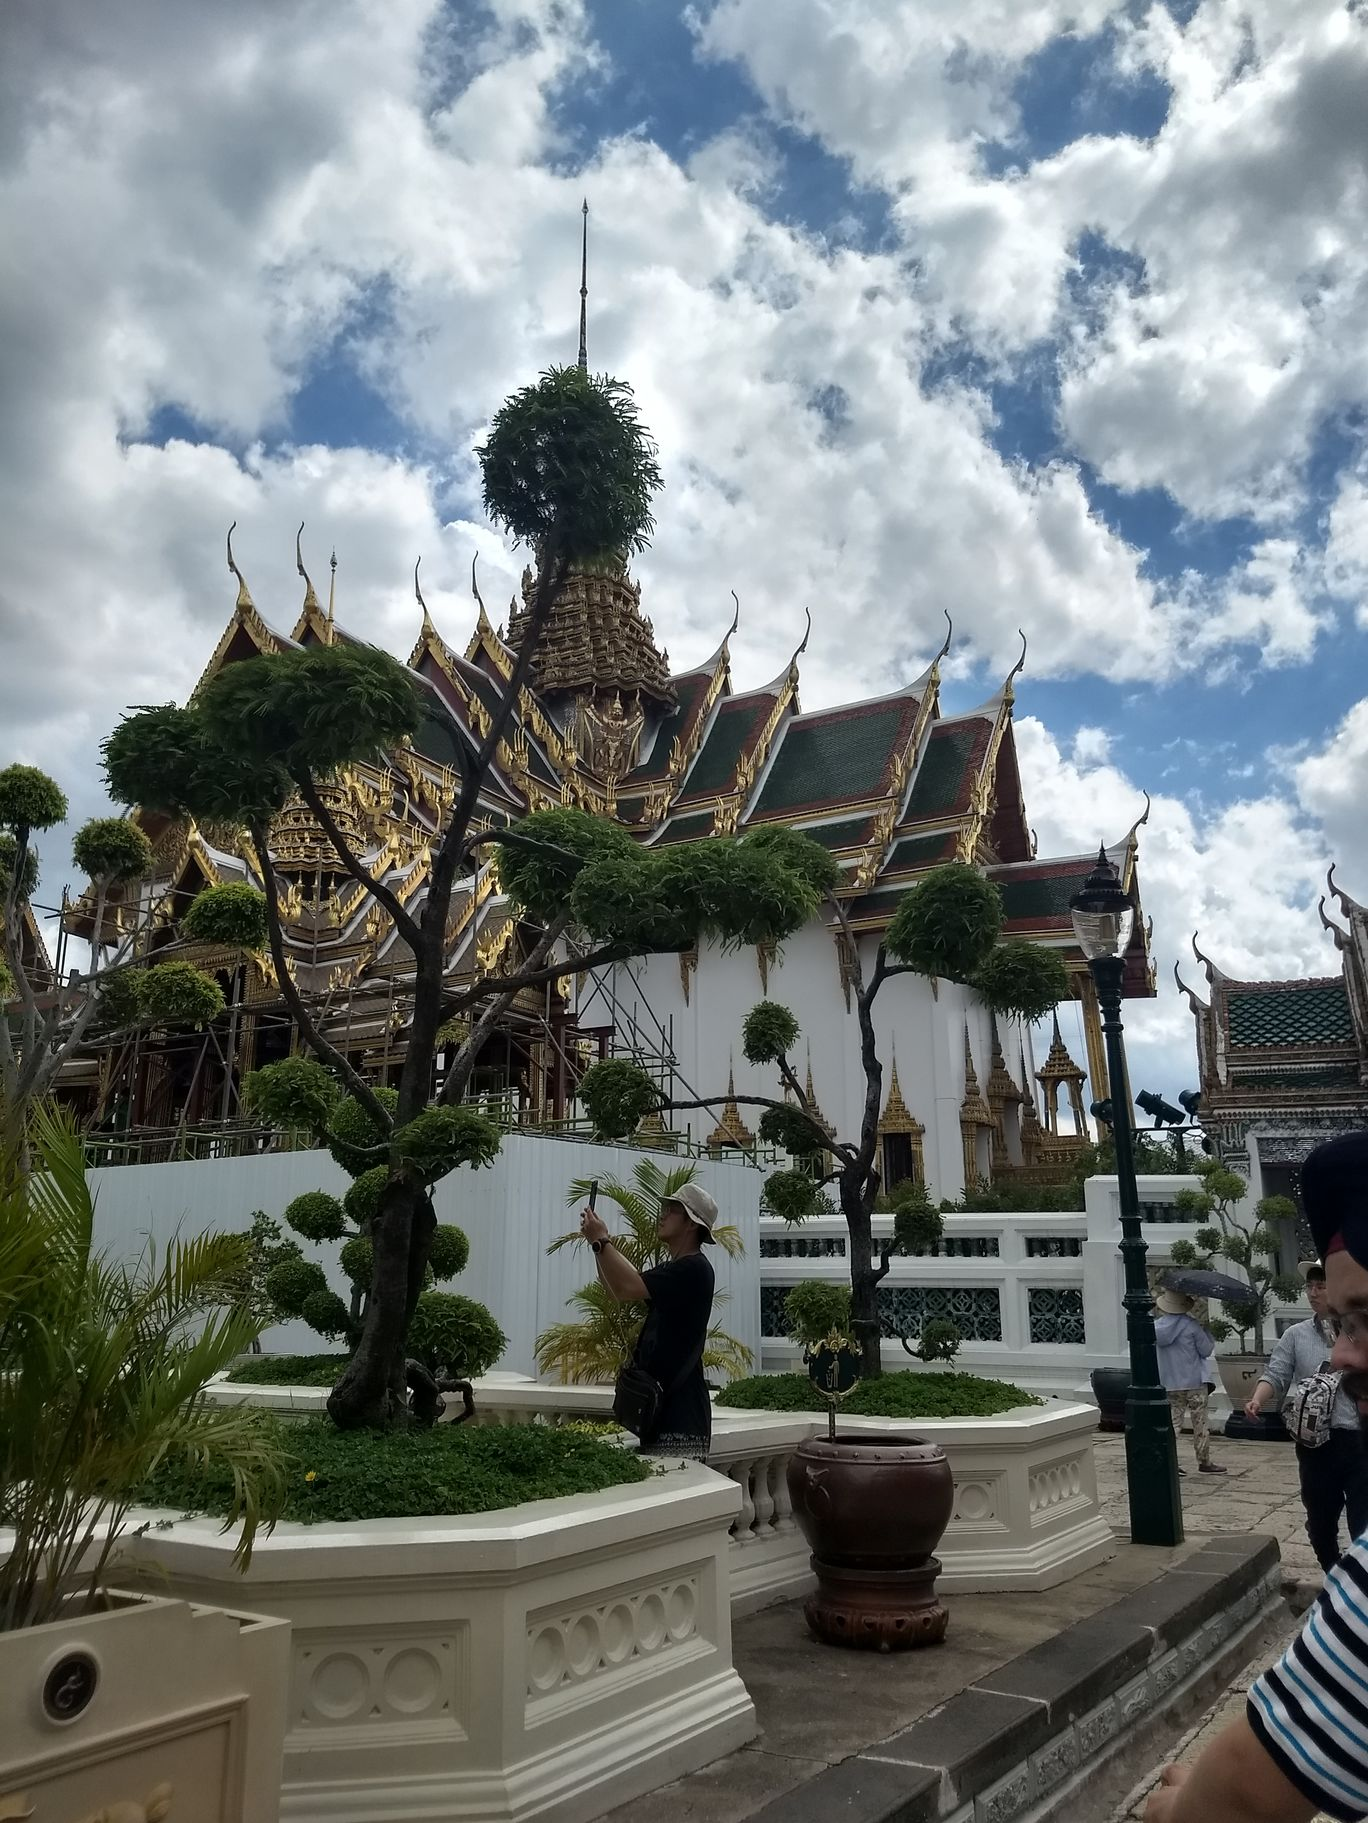 Photo of The Grand Palace By Manpreet Kaur